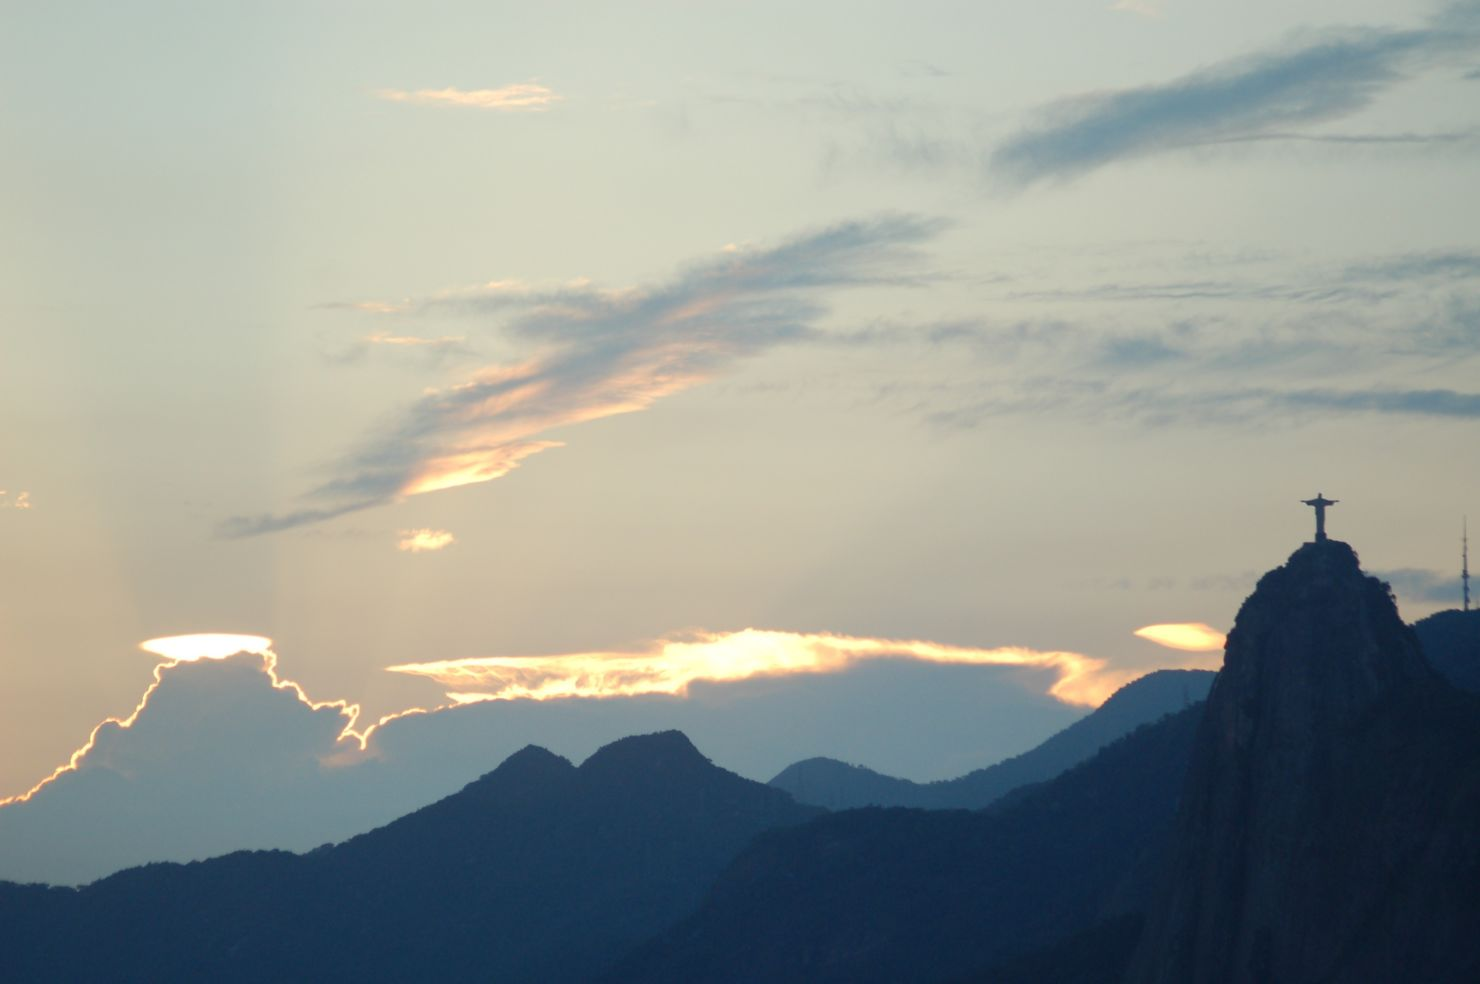 Christ the Redeemer statue at sunset